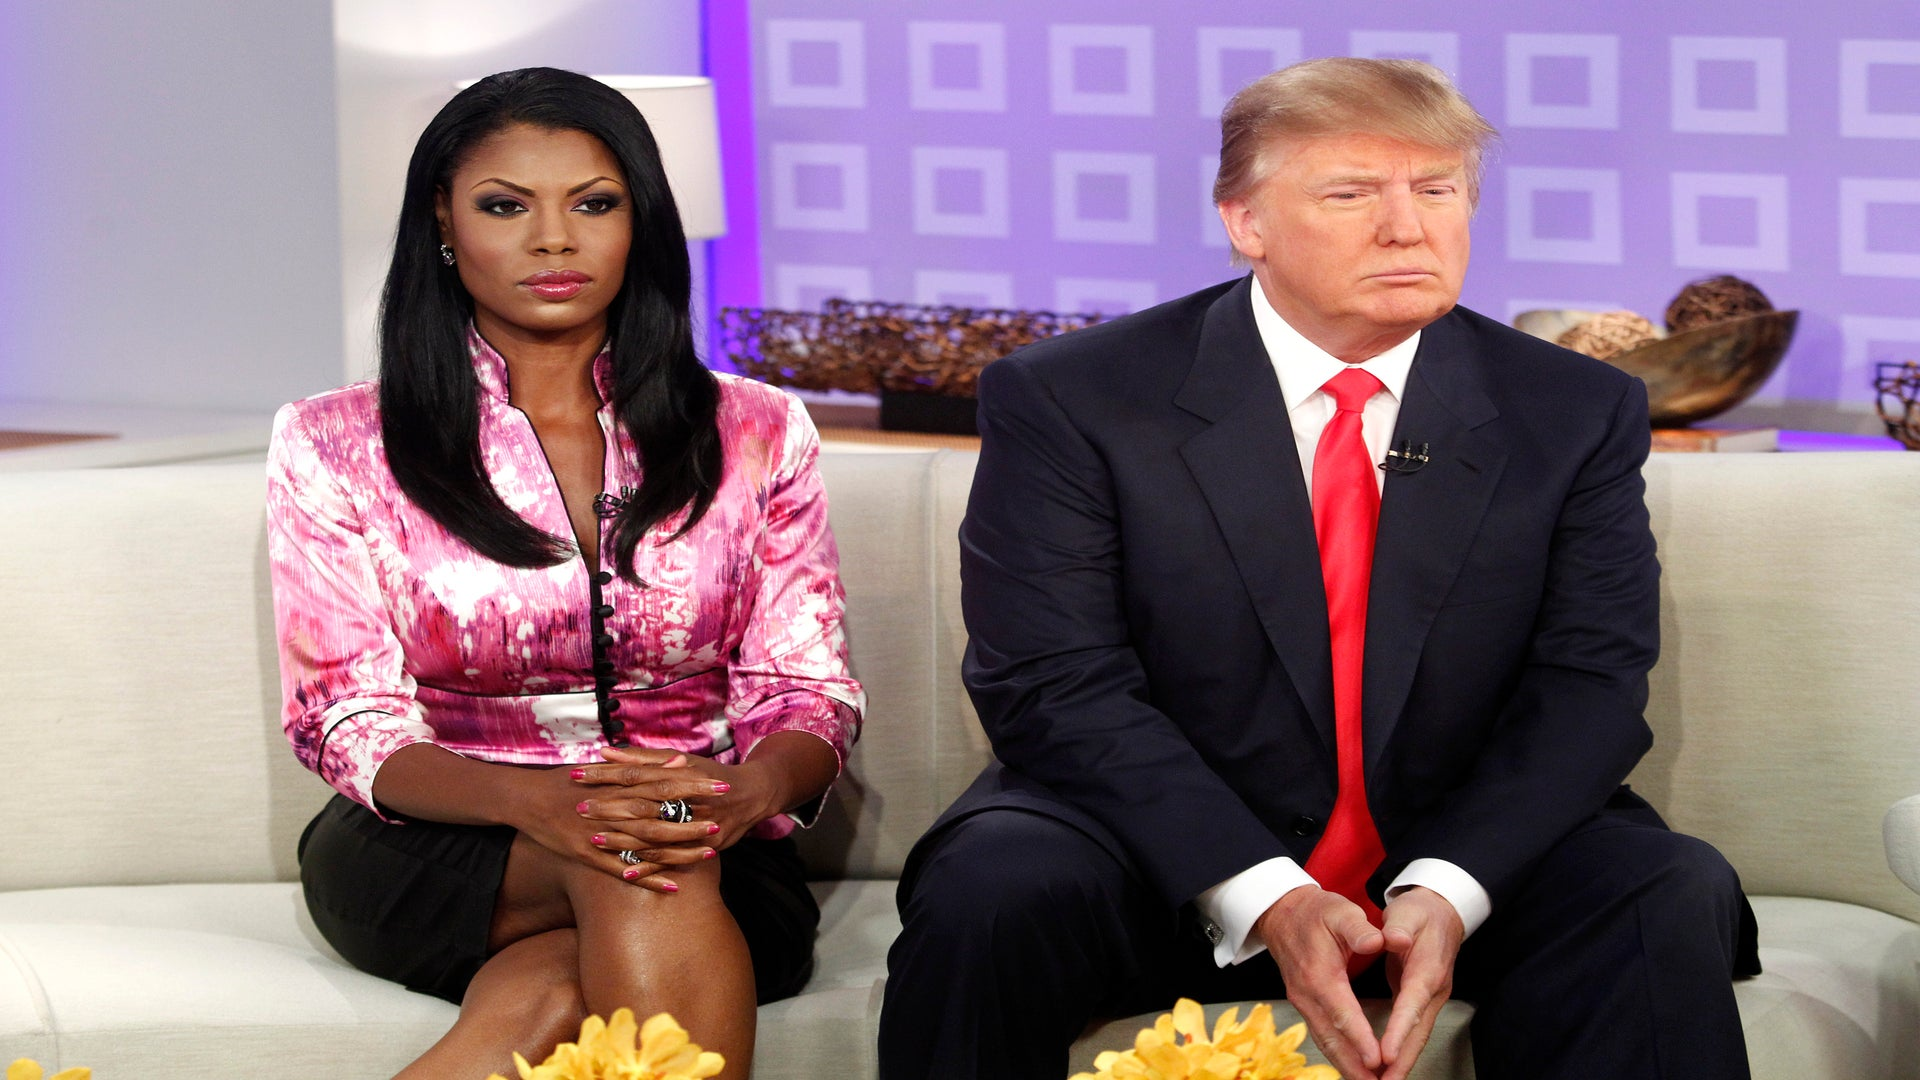 Omarosa Manigault Says Trump's Critics Will 'Have to Bow Down to President Trump'